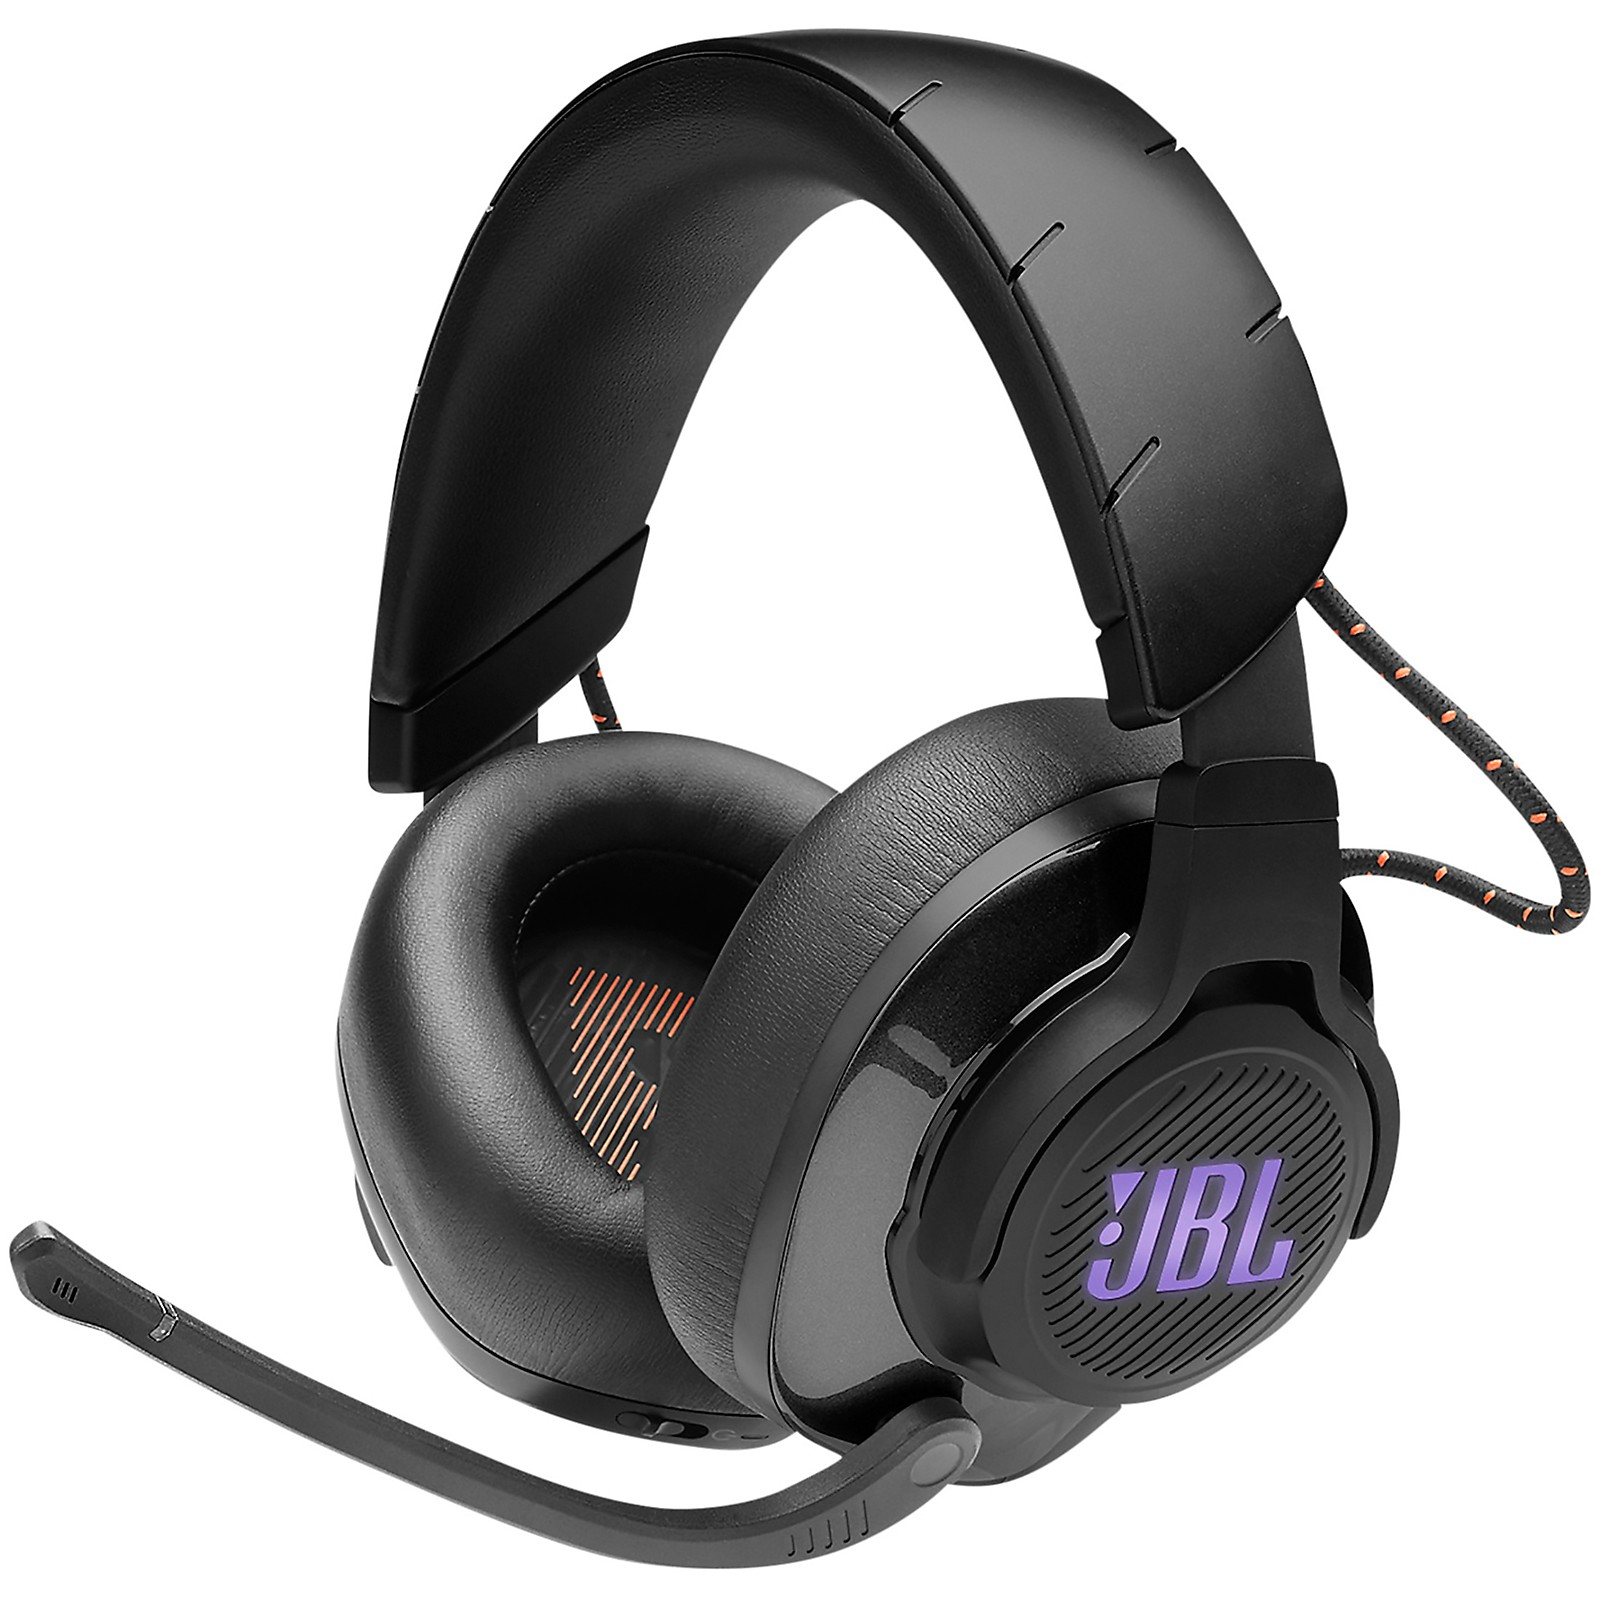 JBL Quantum 600 2.4 Ghz Wireless Over-Ear Gaming Headset